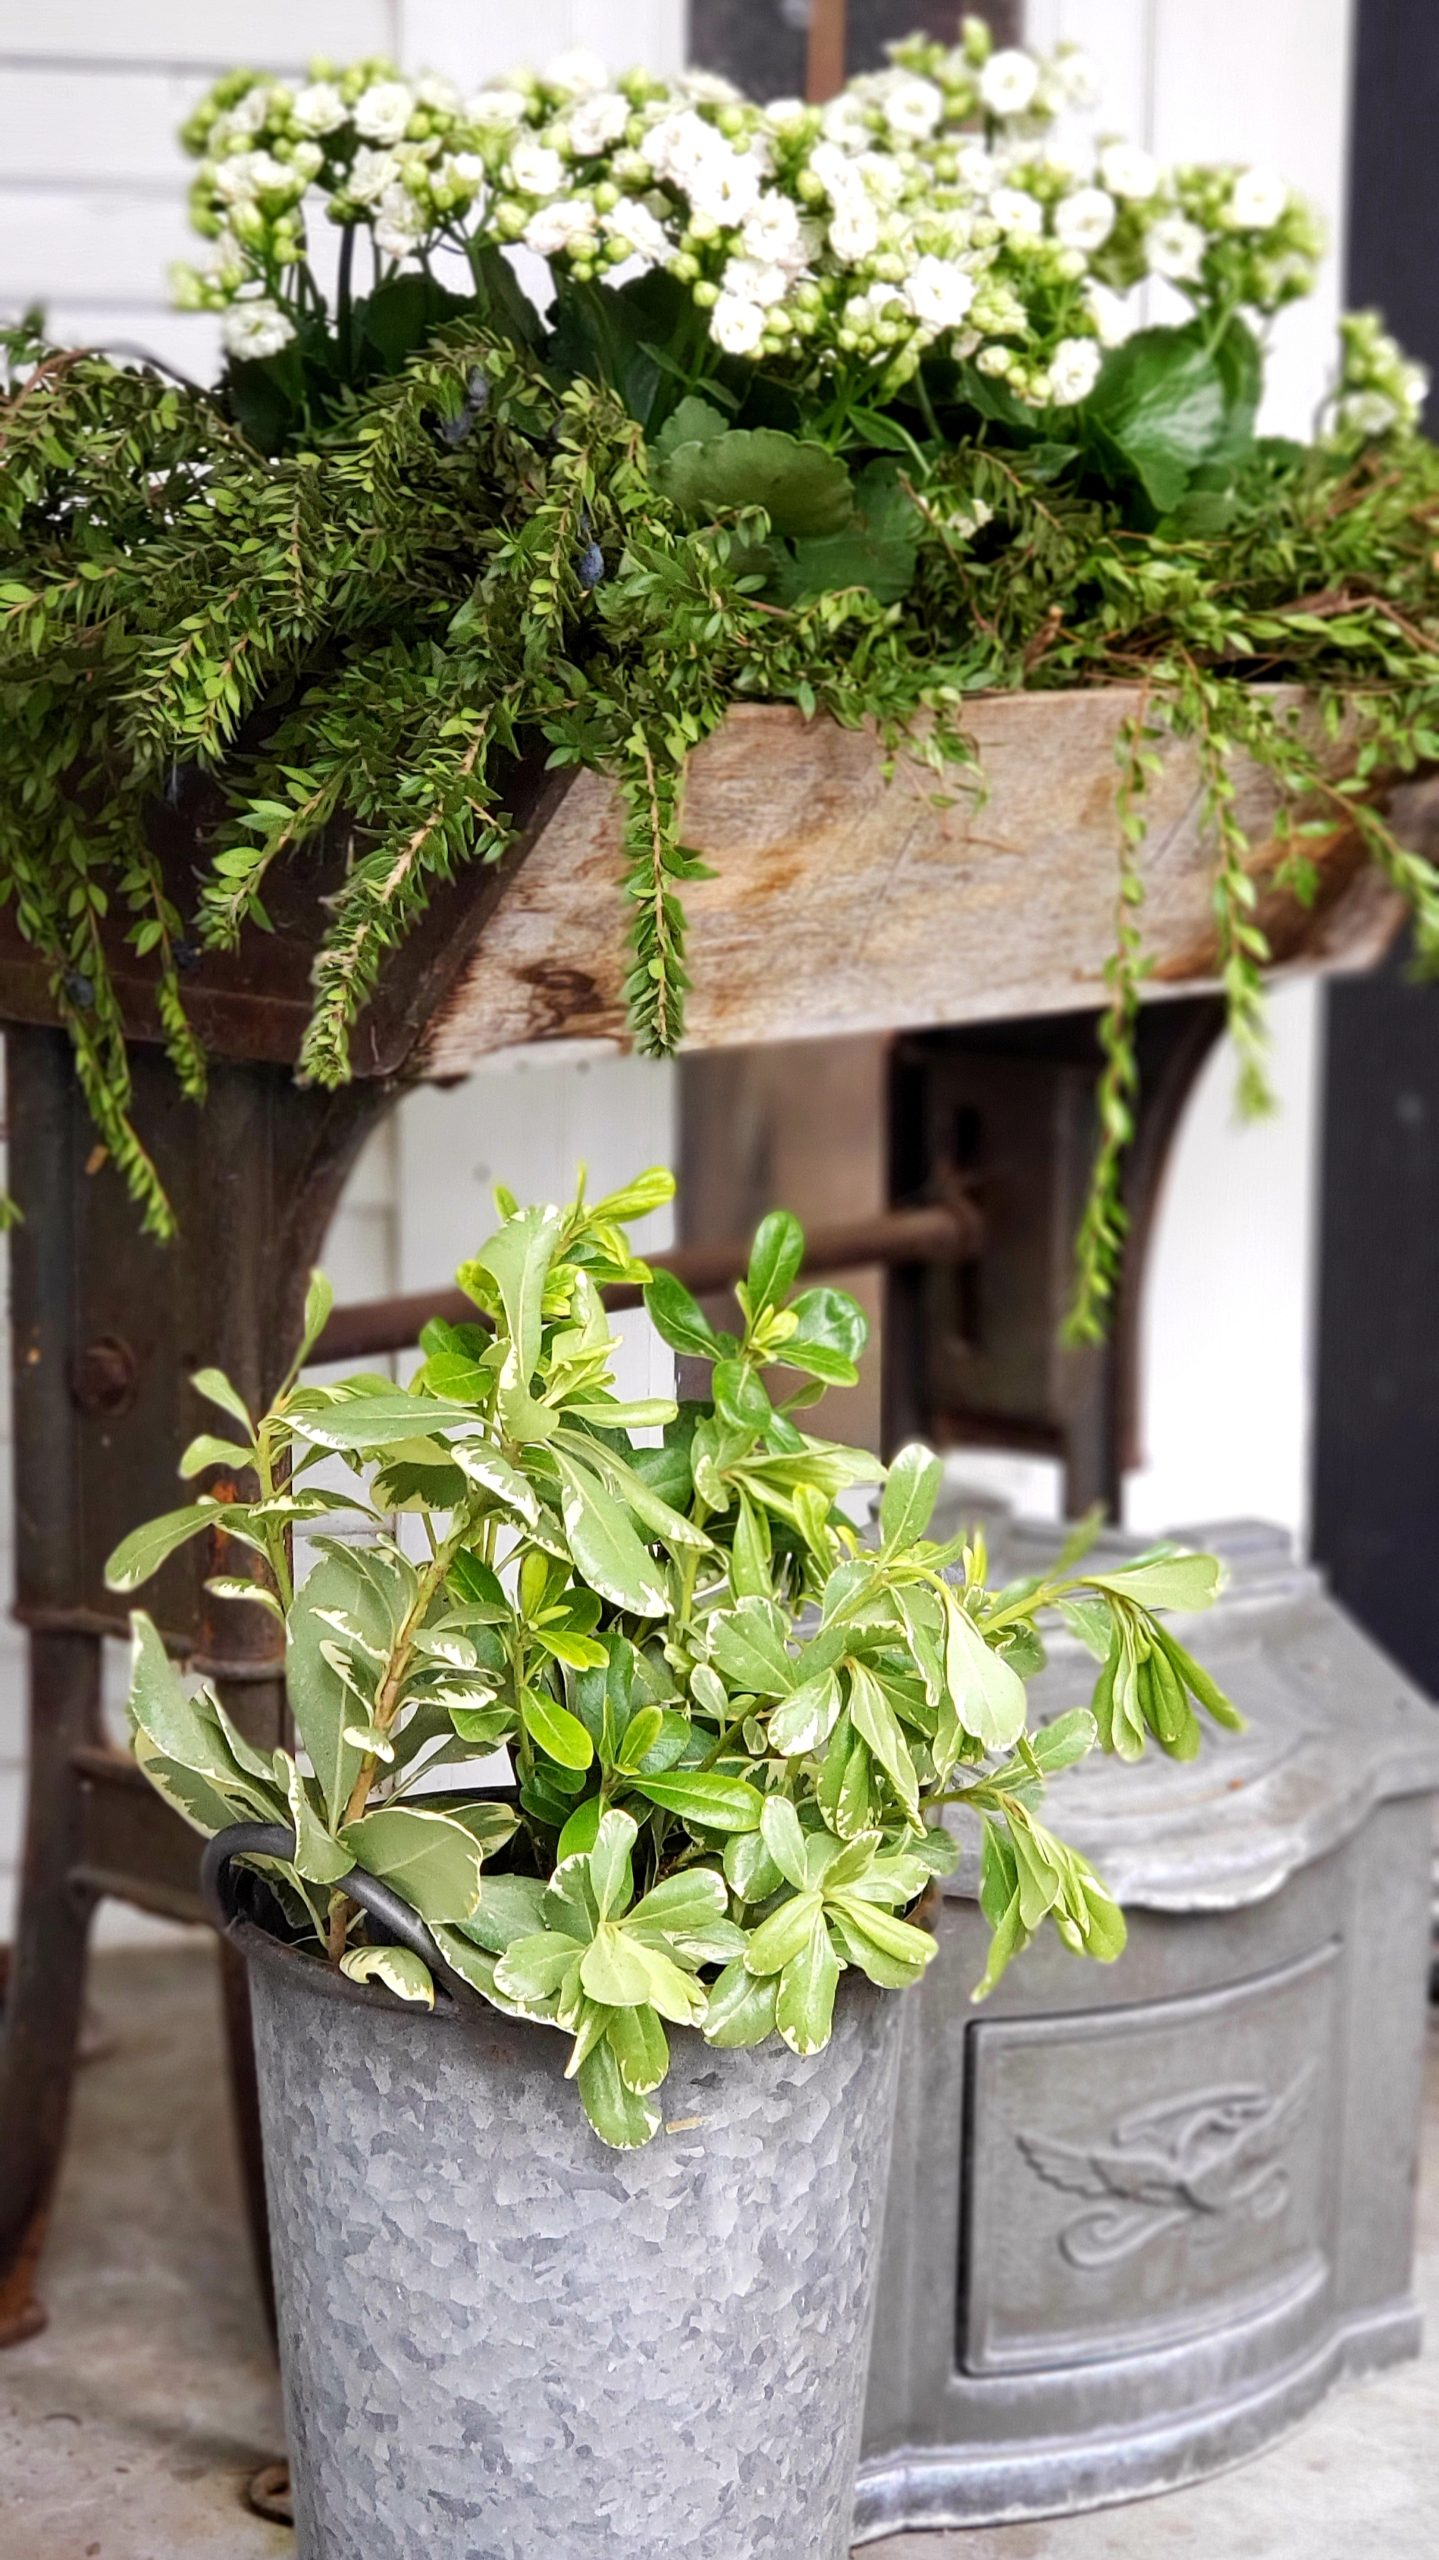 winter Greenery on Porch